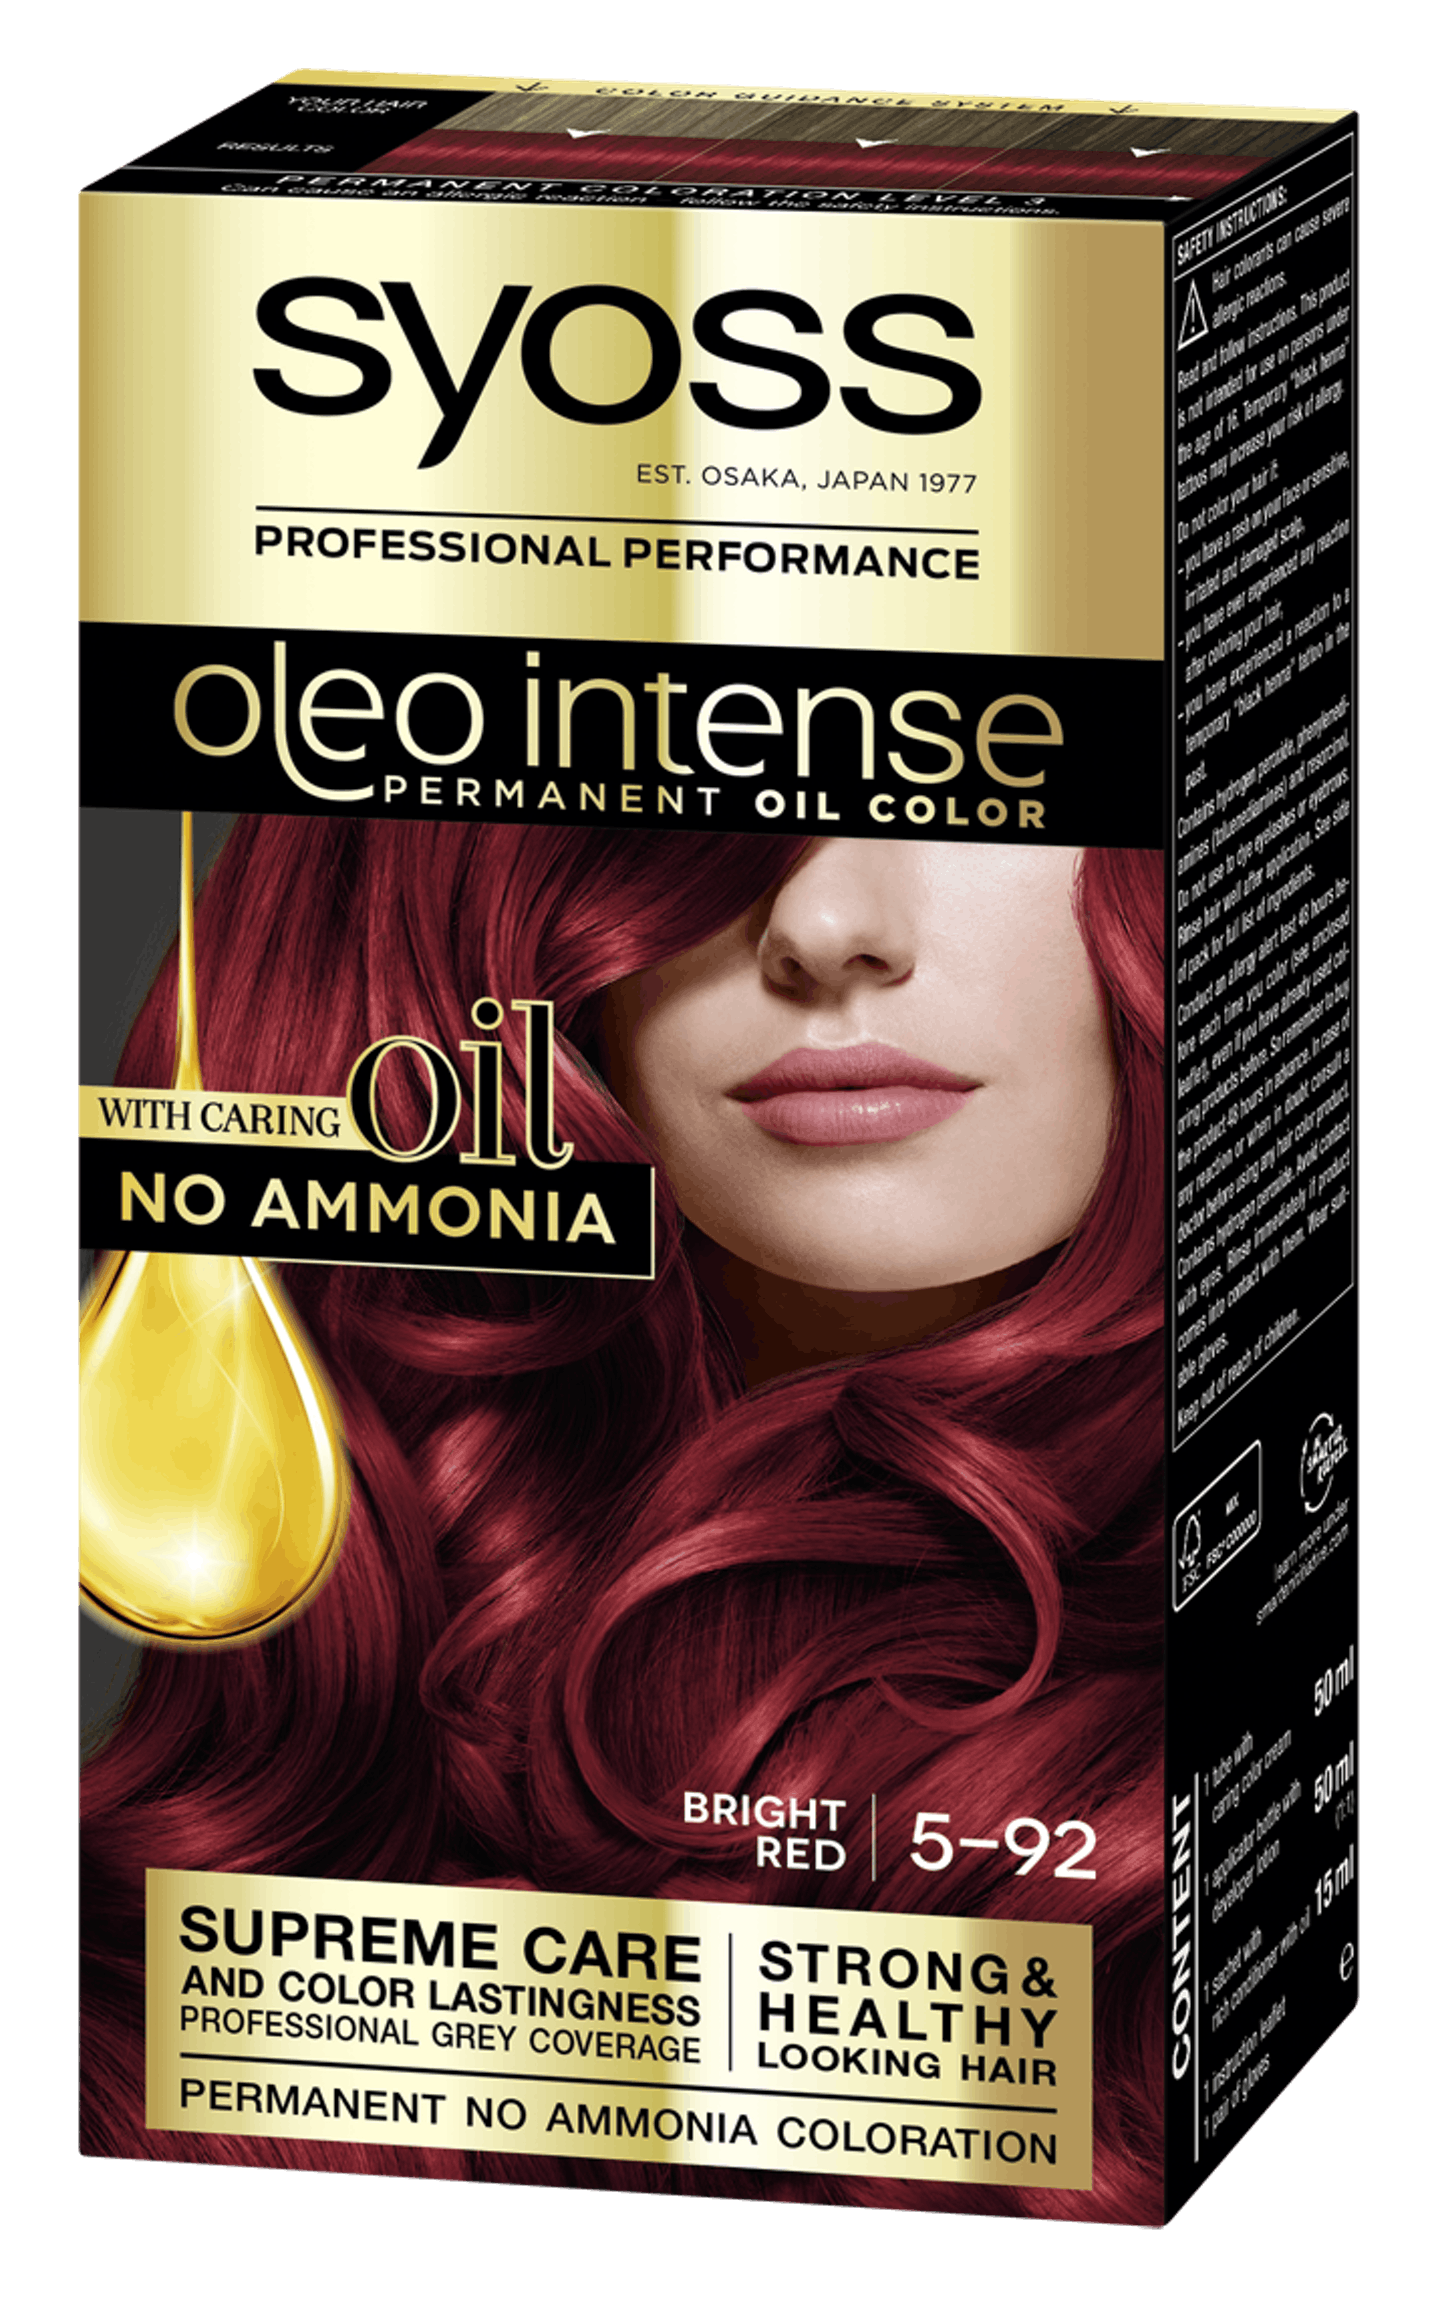 Syoss Oleo Intense Permanent Oil Color 5-92 Bright Red